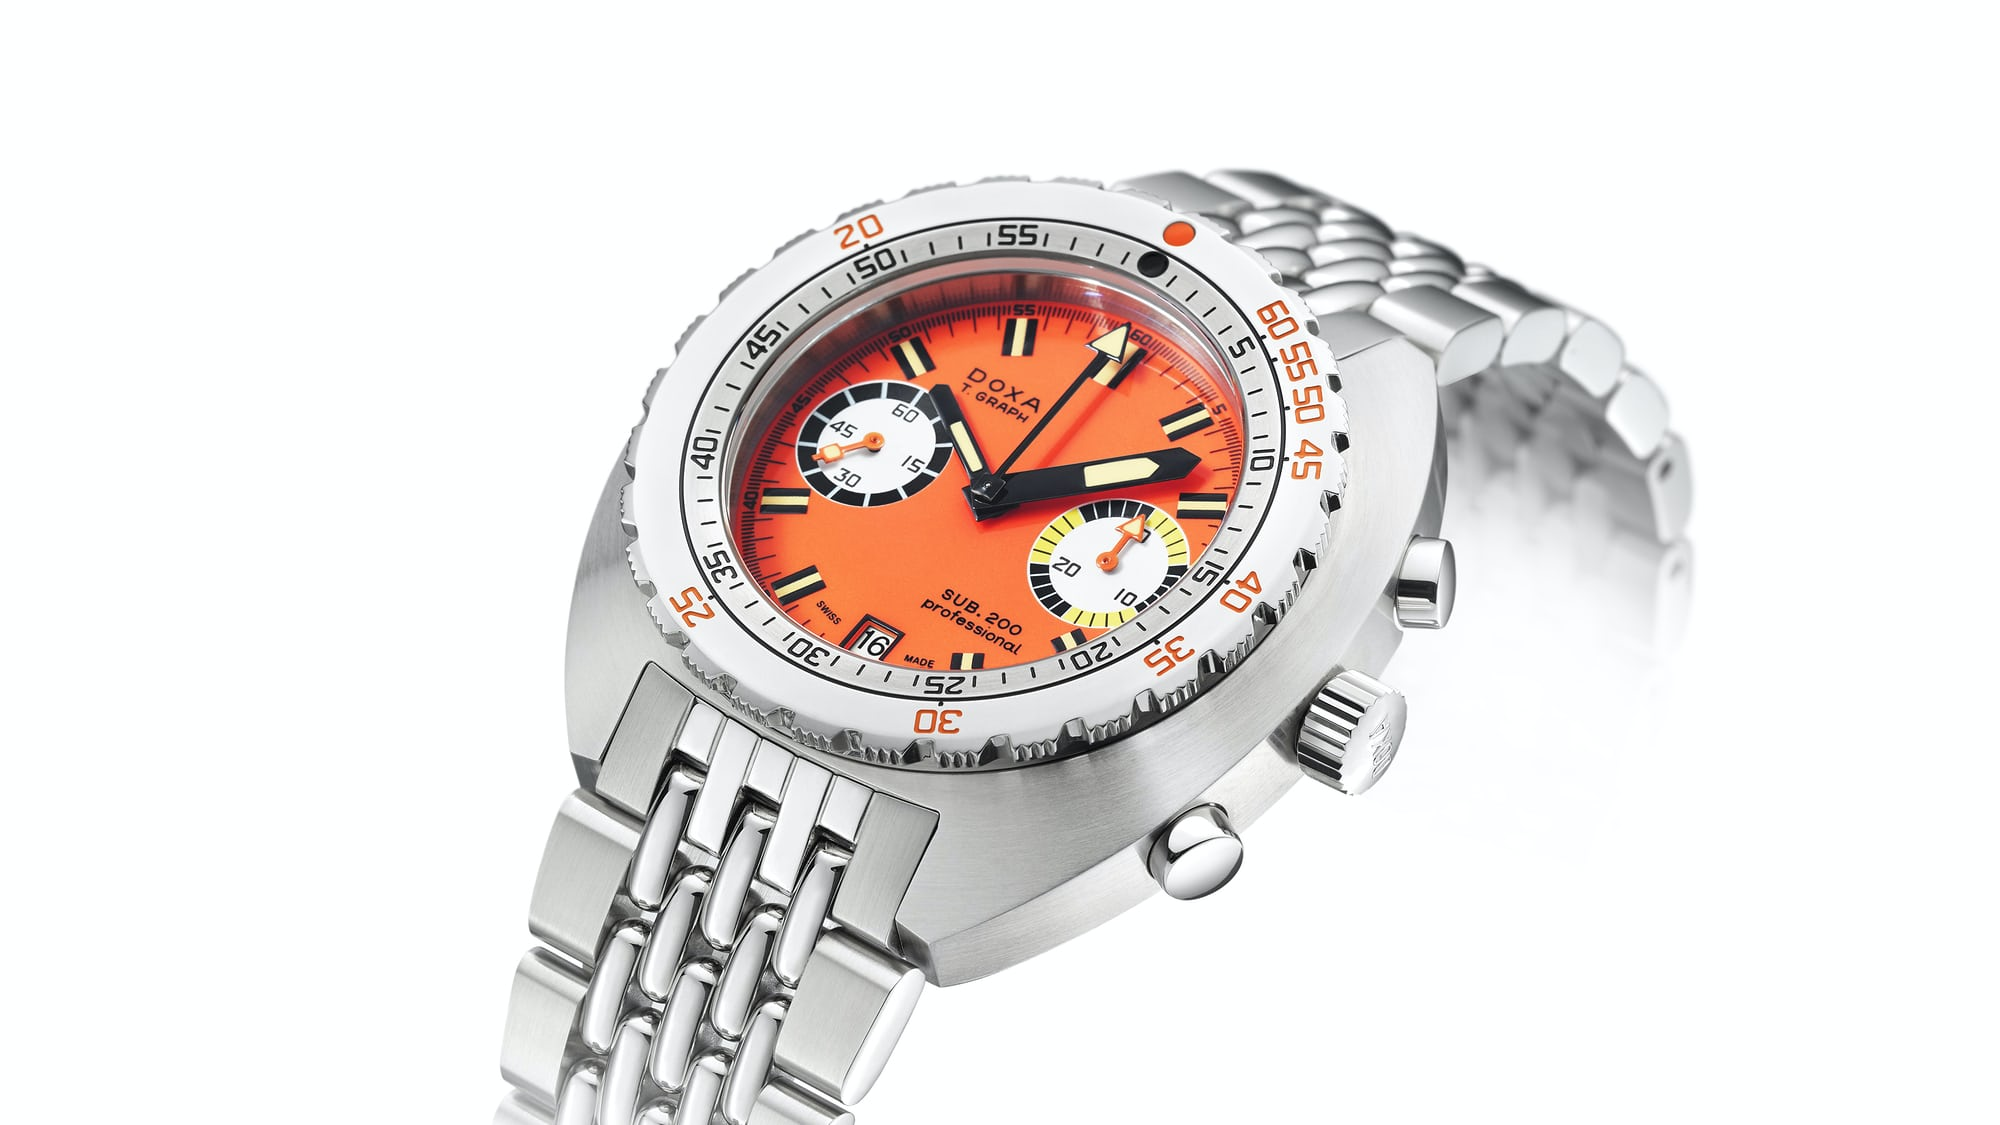 Introducing: The Doxa SUB 200 T.Graph Stainless Steel